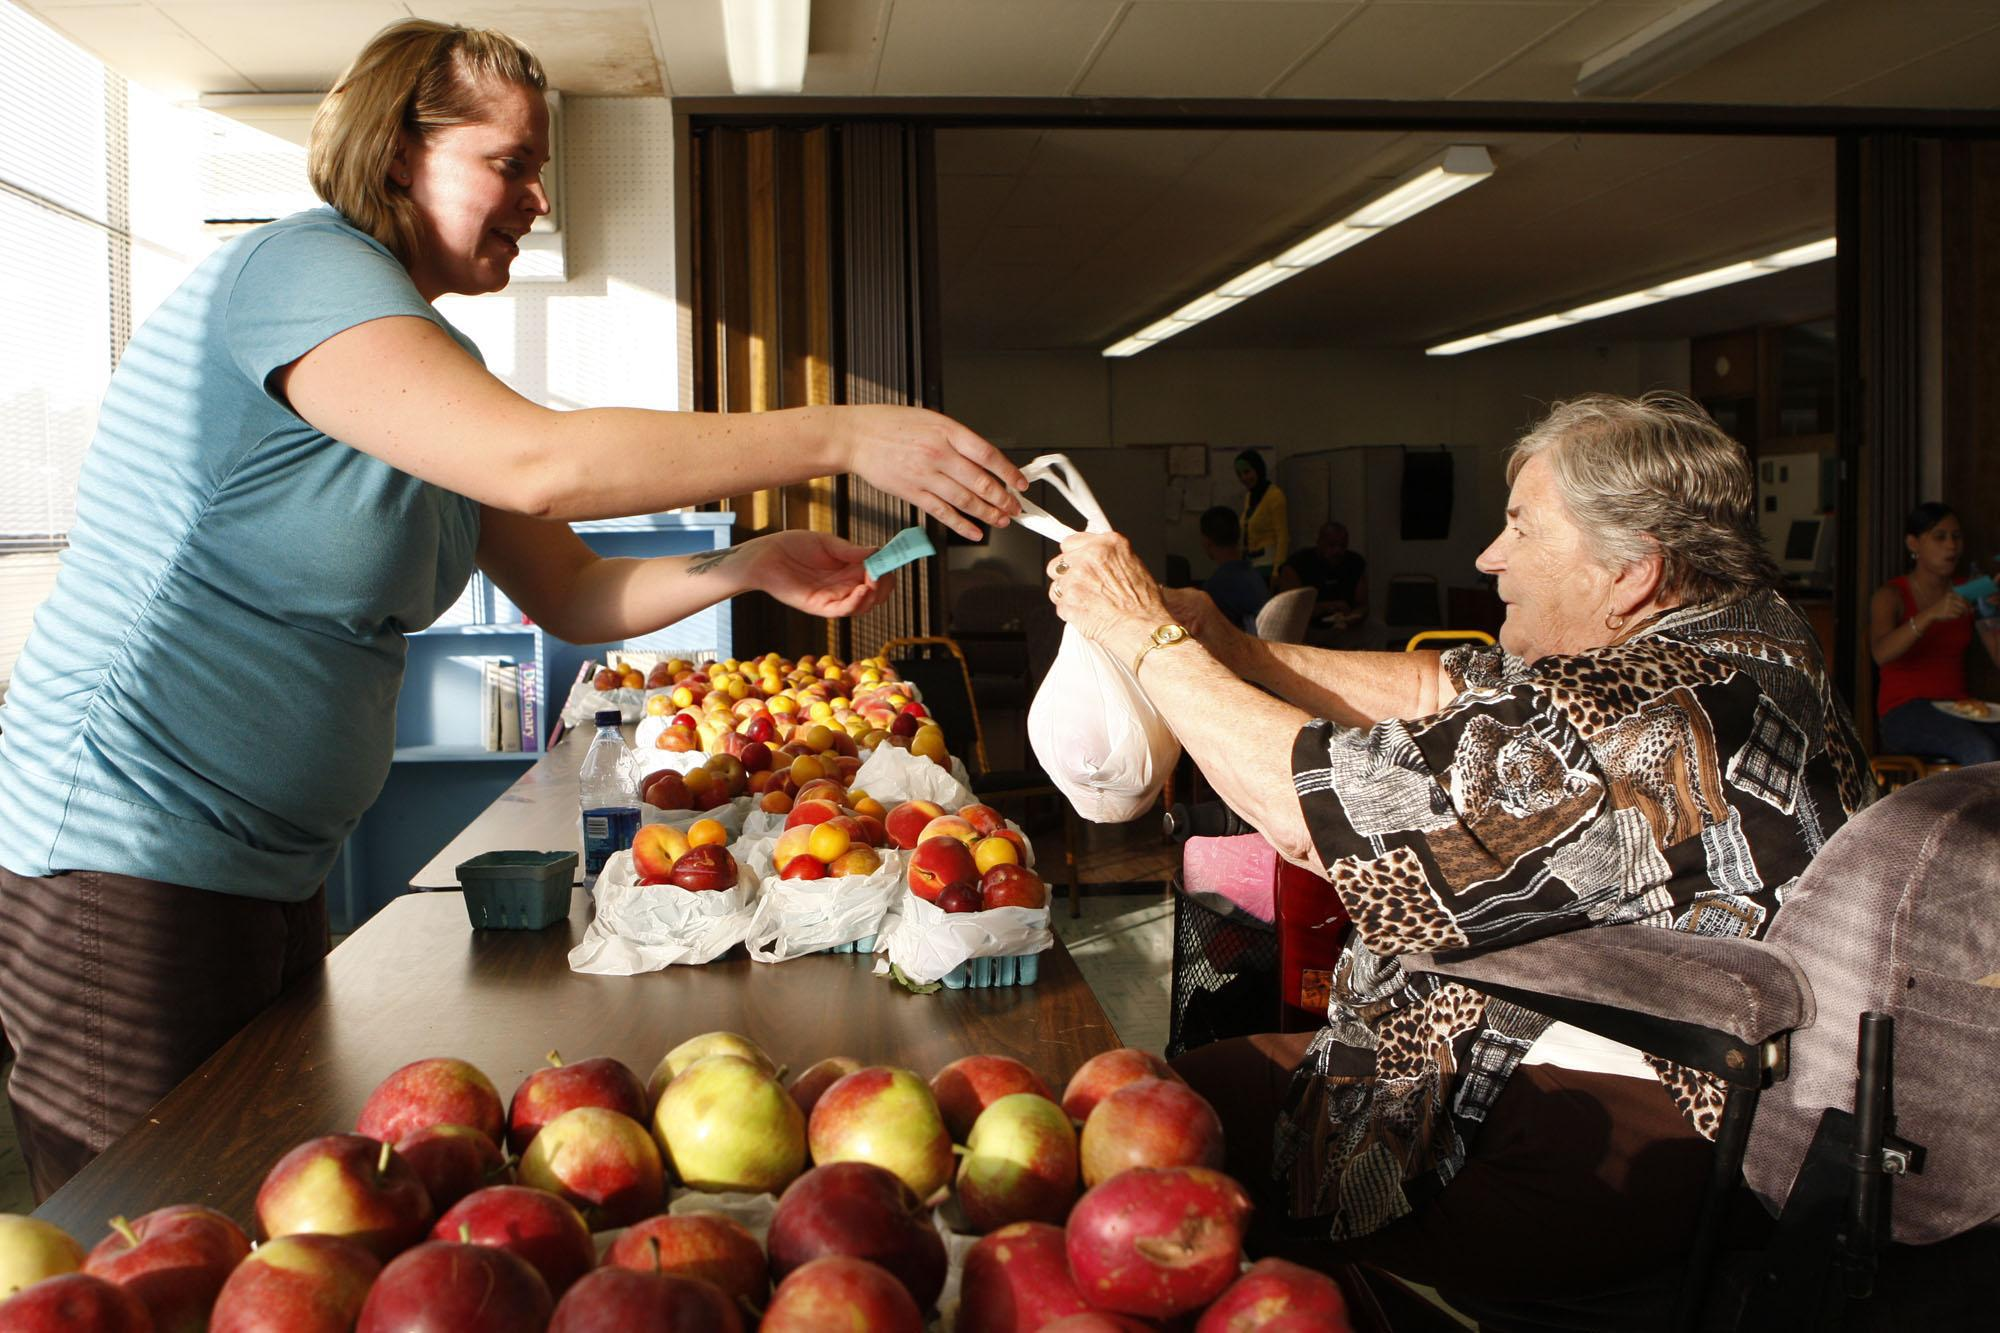 Barbara Marranca receives fresh produce from Christel VanAllen provided by Dan Tower Farm in Youngstown at the Good for the Neighborhood health initiative created by the Independent Health Foundation. Four similar programs are planned for this month. (Buffalo News file photo)